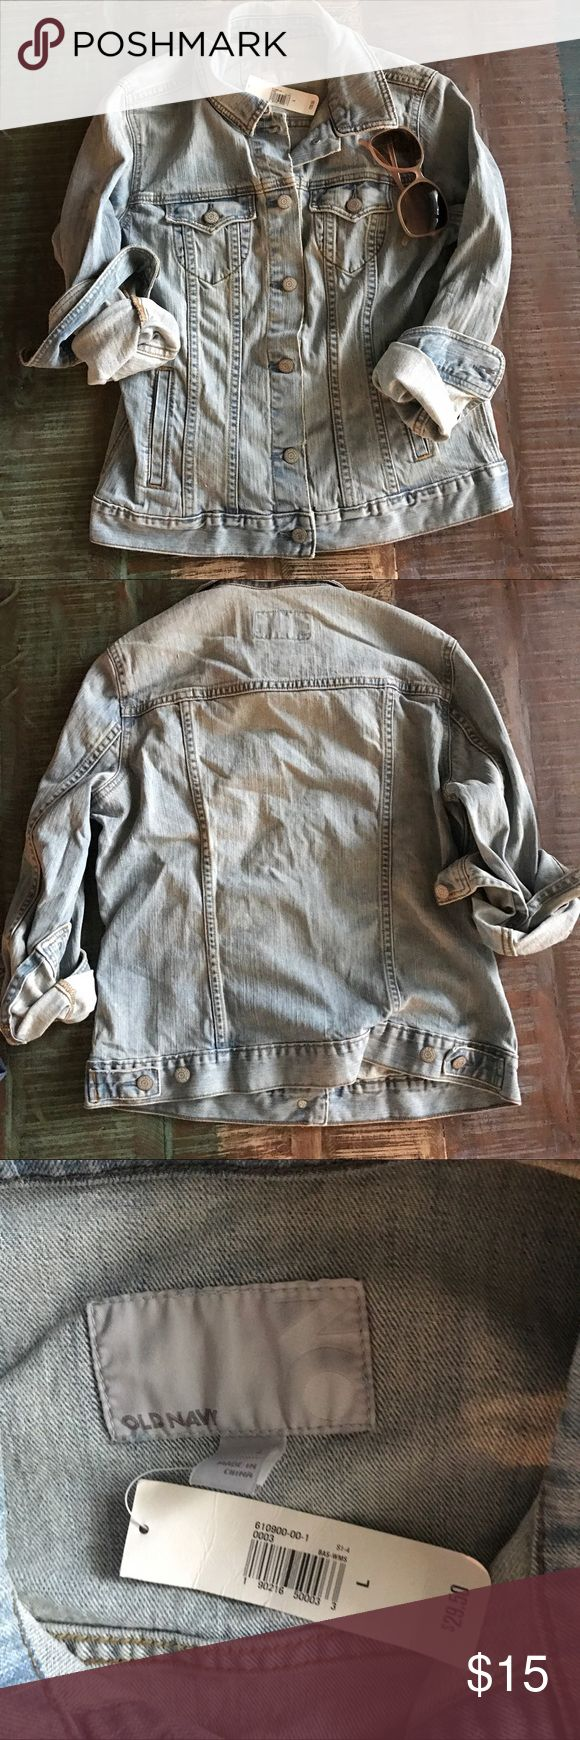 NWT Old Navy Jean Jacket Old Navy Jean Jacket NWT Size Large.       Glasses not included Old Navy Jackets & Coats Jean Jackets